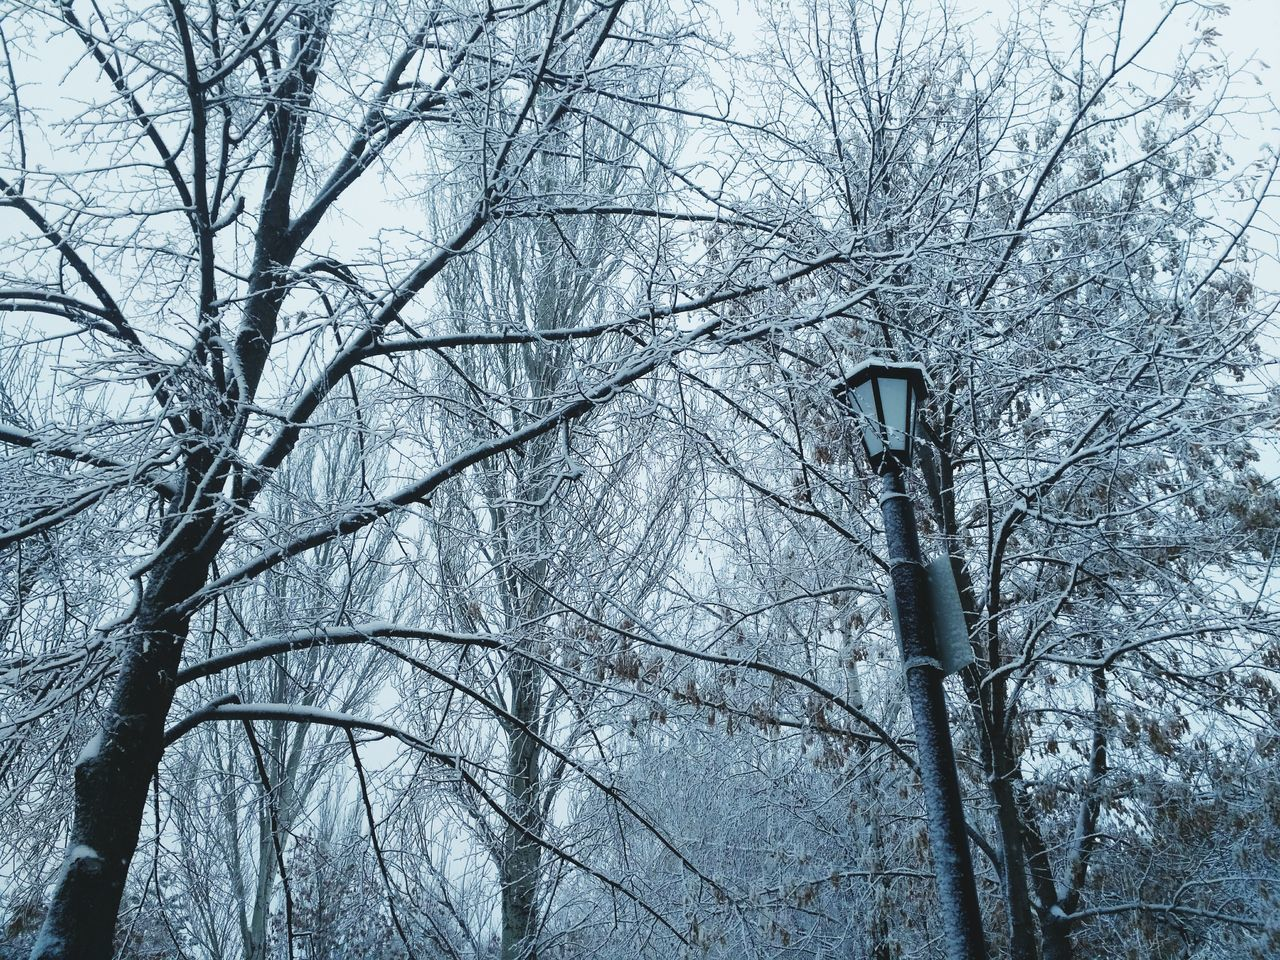 bare tree, tree, branch, nature, winter, forest, no people, day, tree trunk, outdoors, dead plant, cold temperature, low angle view, tranquility, beauty in nature, snow